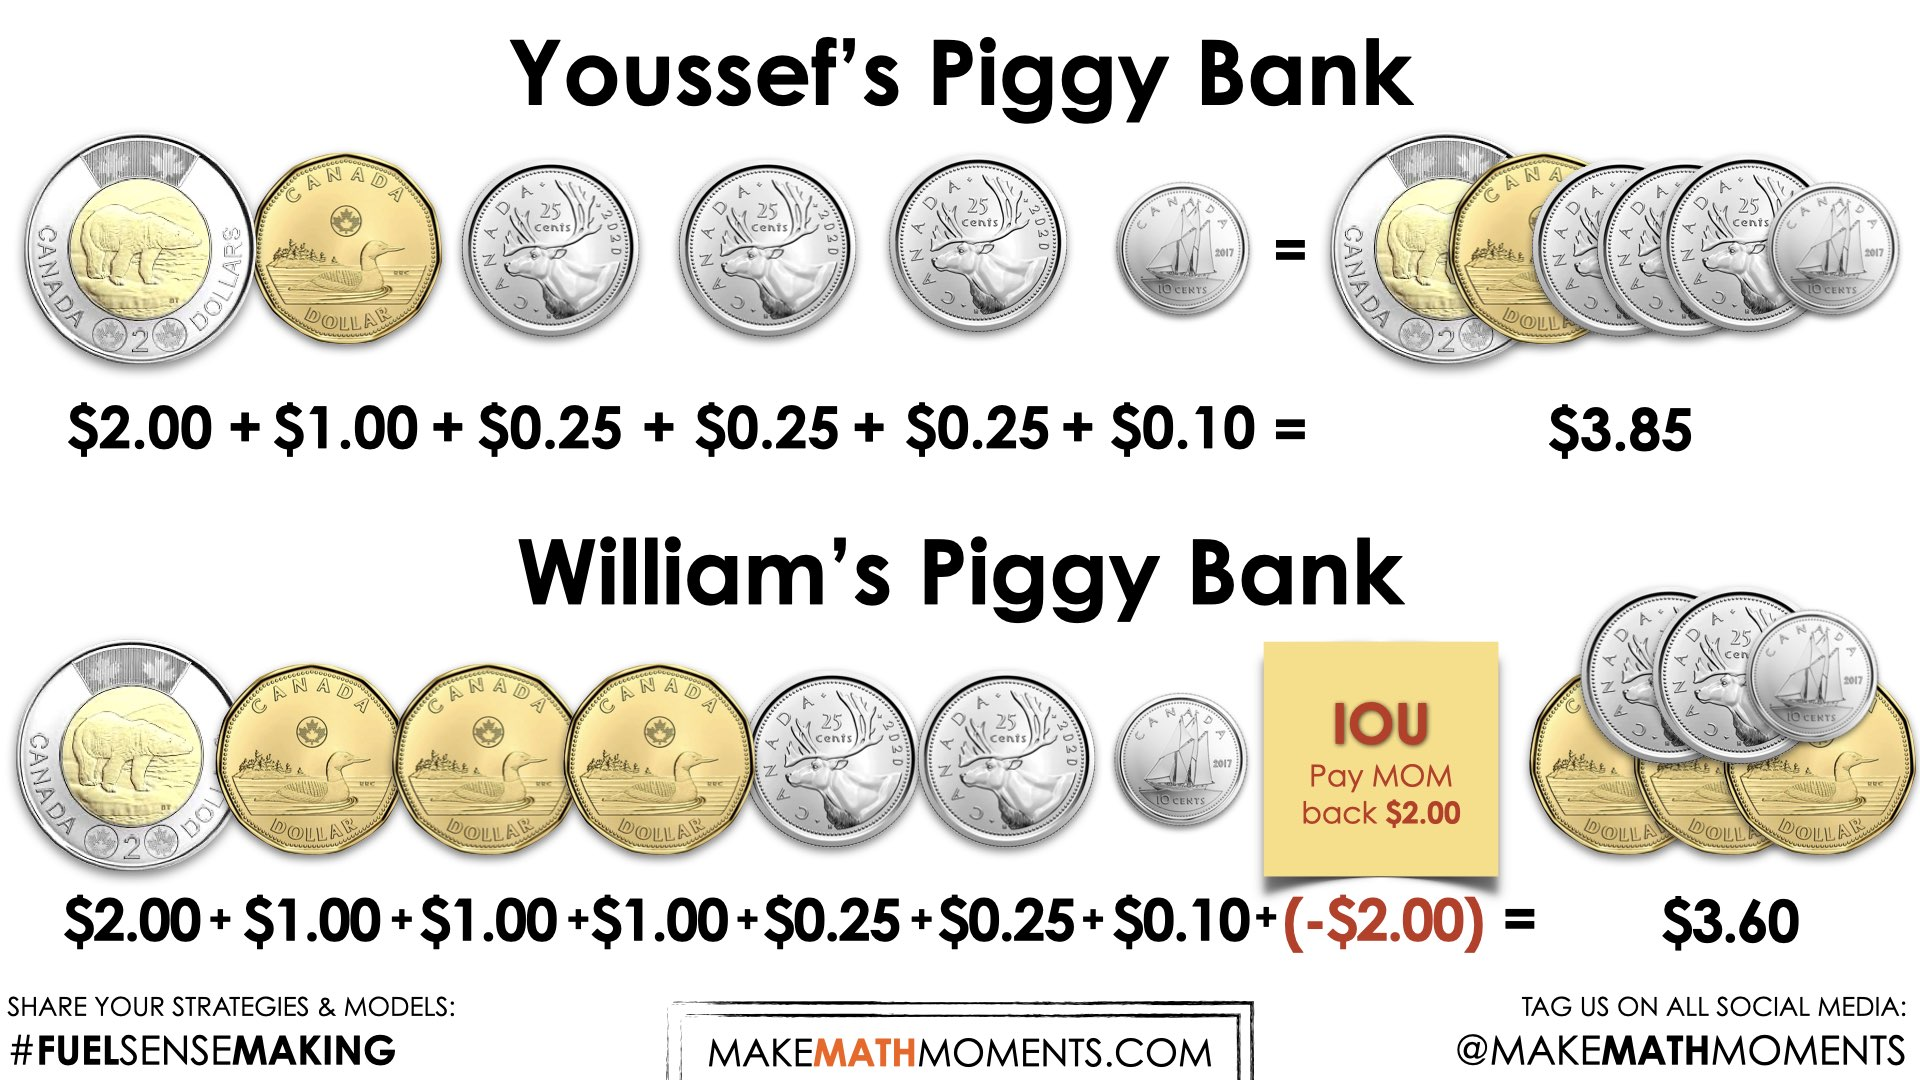 Piggy Bank Revisited [Day 3] - How Much More - 05 - SPARK Estimate Reveal Image CAD.001